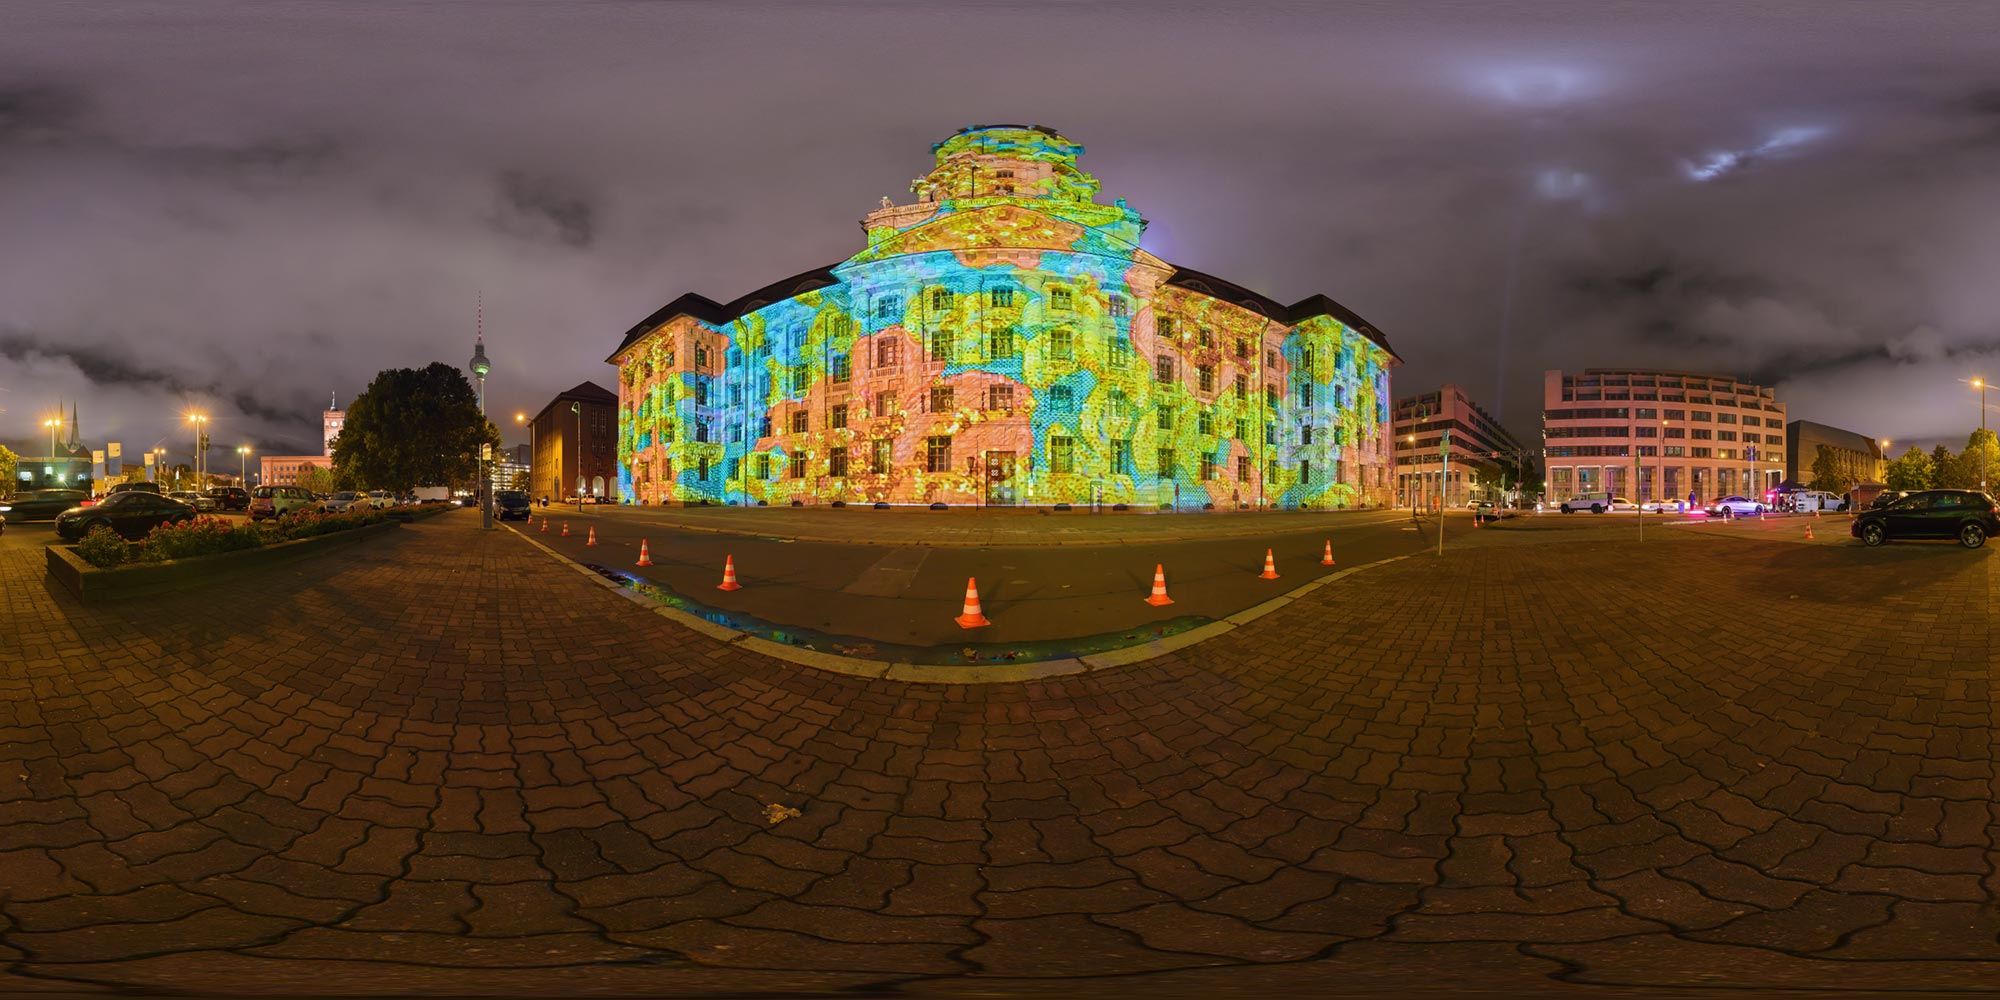 Panorama Berlin Festival of Lights - FOL 2016 Altes Stadthaus